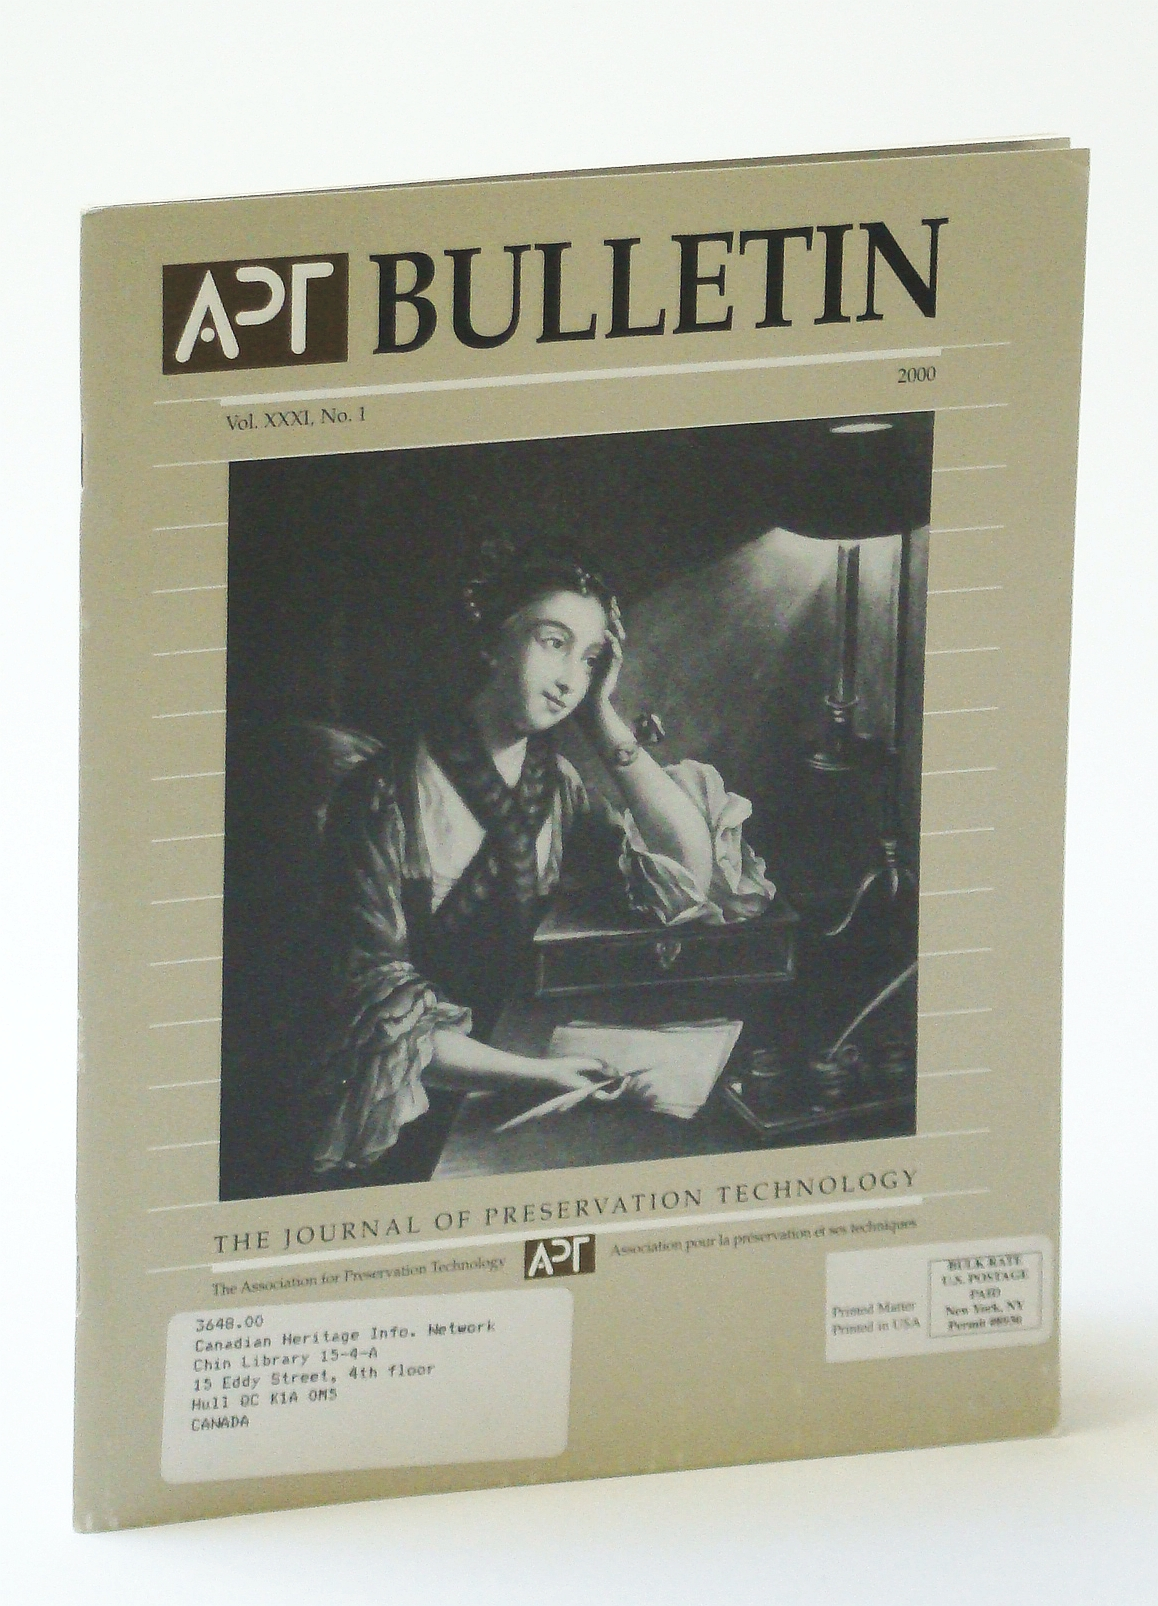 Image for APT Bulletin - The Journal of Preservation Technology, Vol. XXXI, No. 1, 2000 - Lighting Historic House Museums